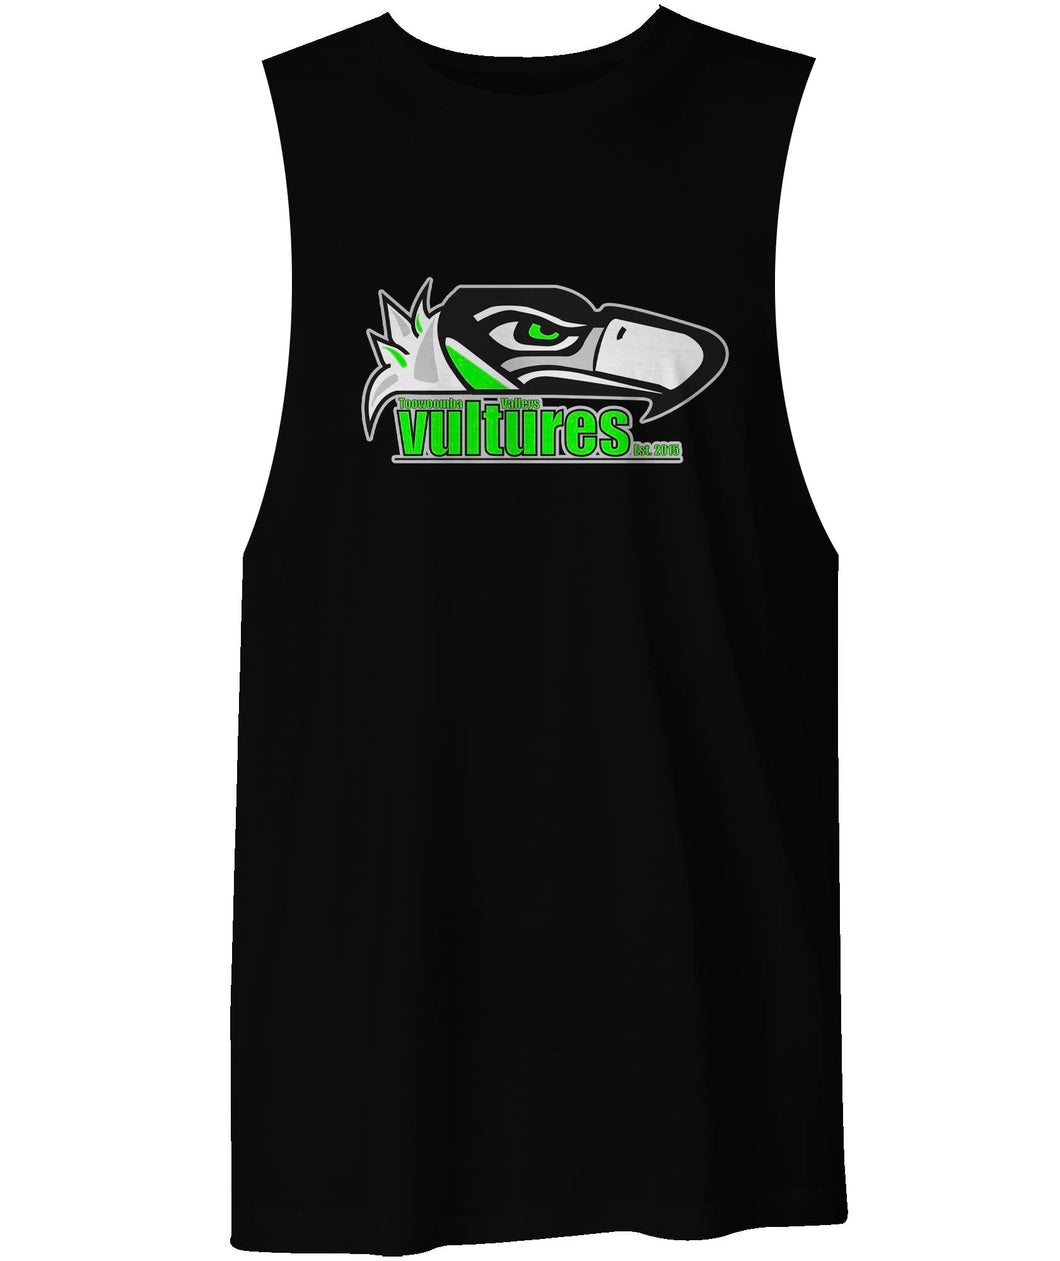 Toowoomba Valleys Vultures Official Logo Muscle T